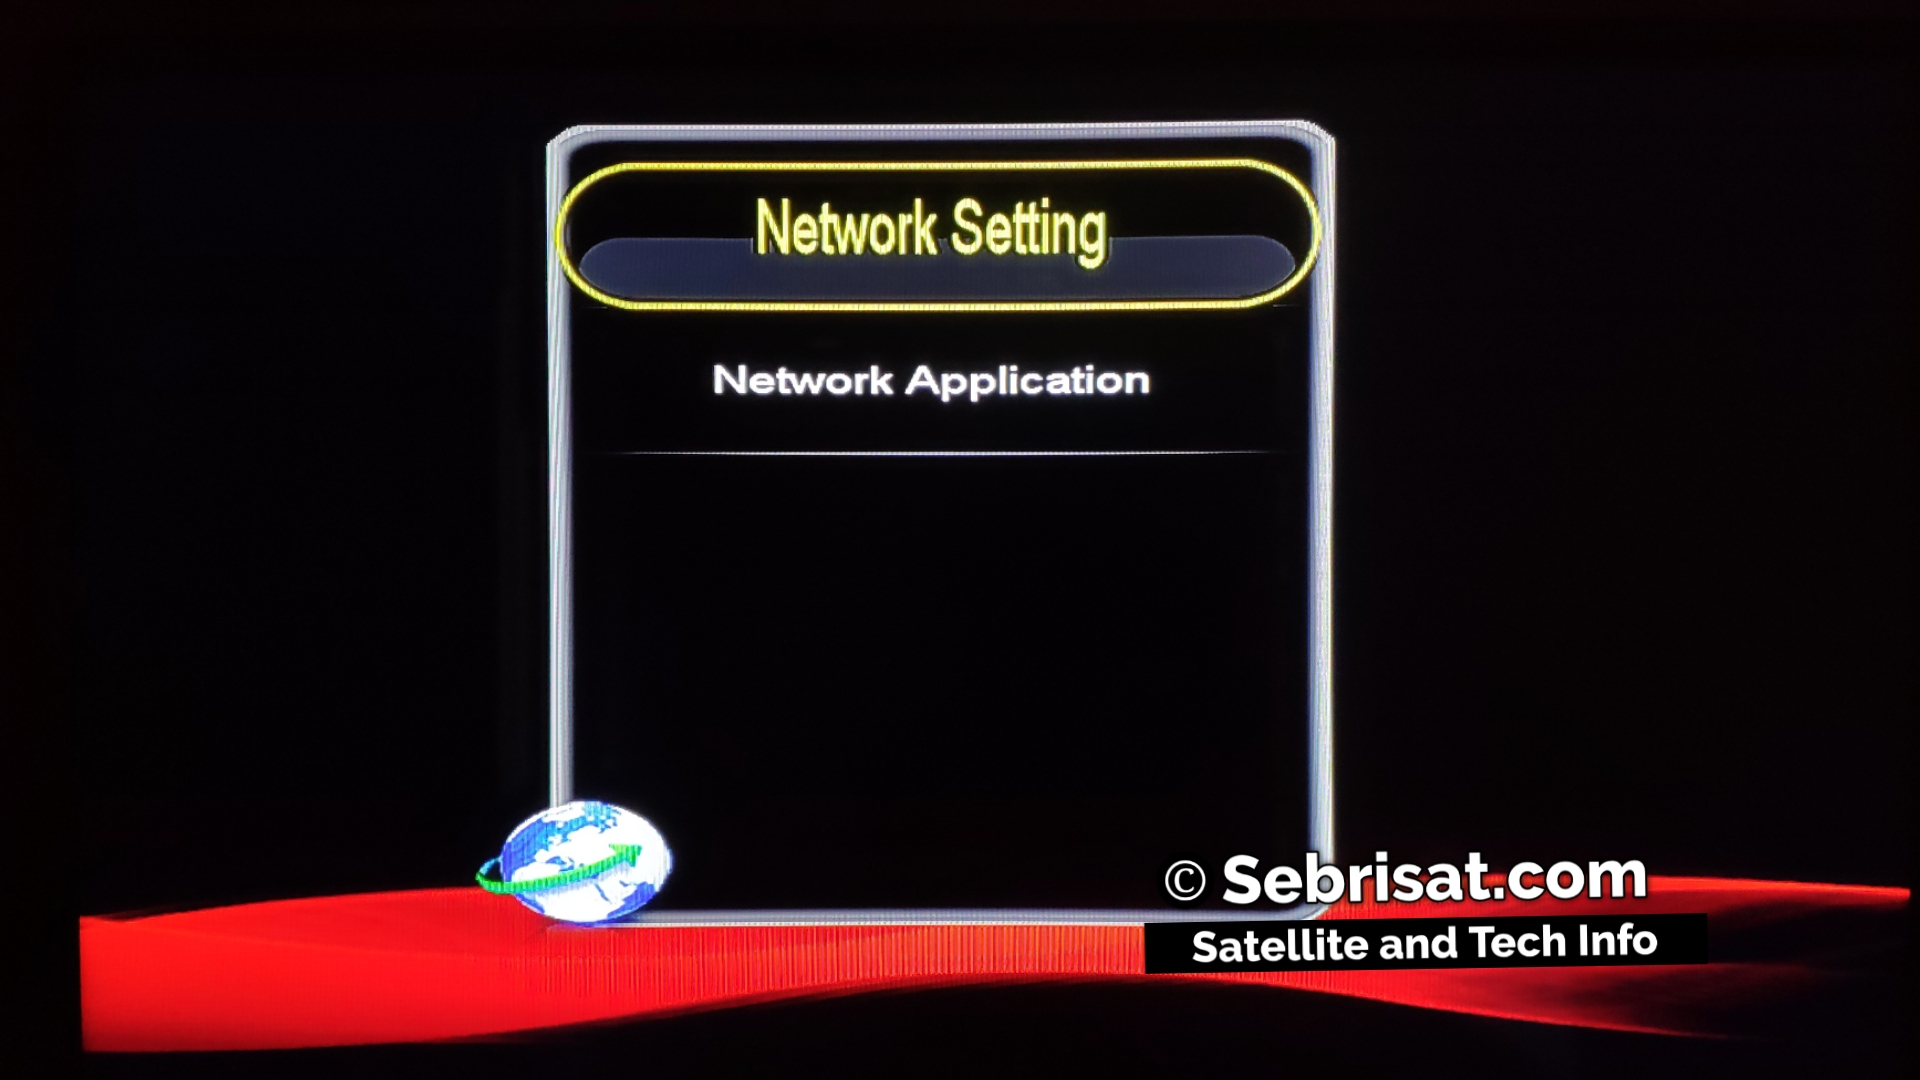 How to use IPTV ON SUPERMAX | Sebrisat Satellite and Tech